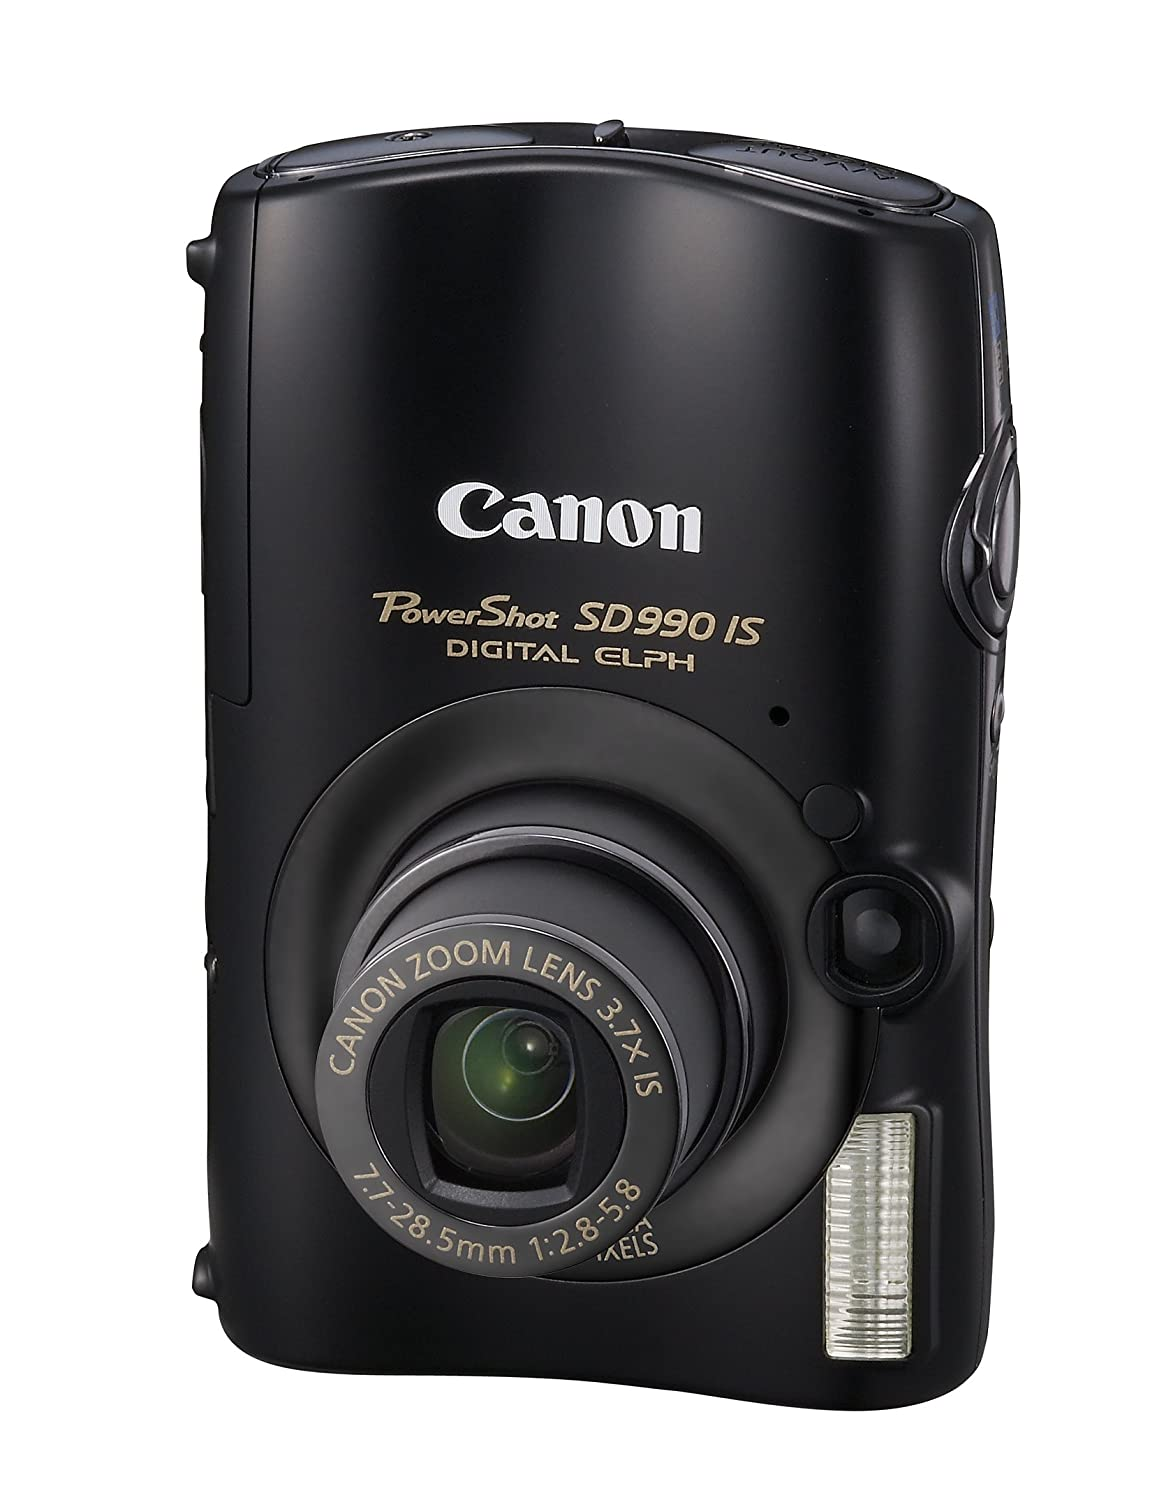 amazon com canon powershot sd990is 14 7mp digital camera with 3 7x rh amazon com canon powershot sd890 is manual canon powershot sd980 is manual